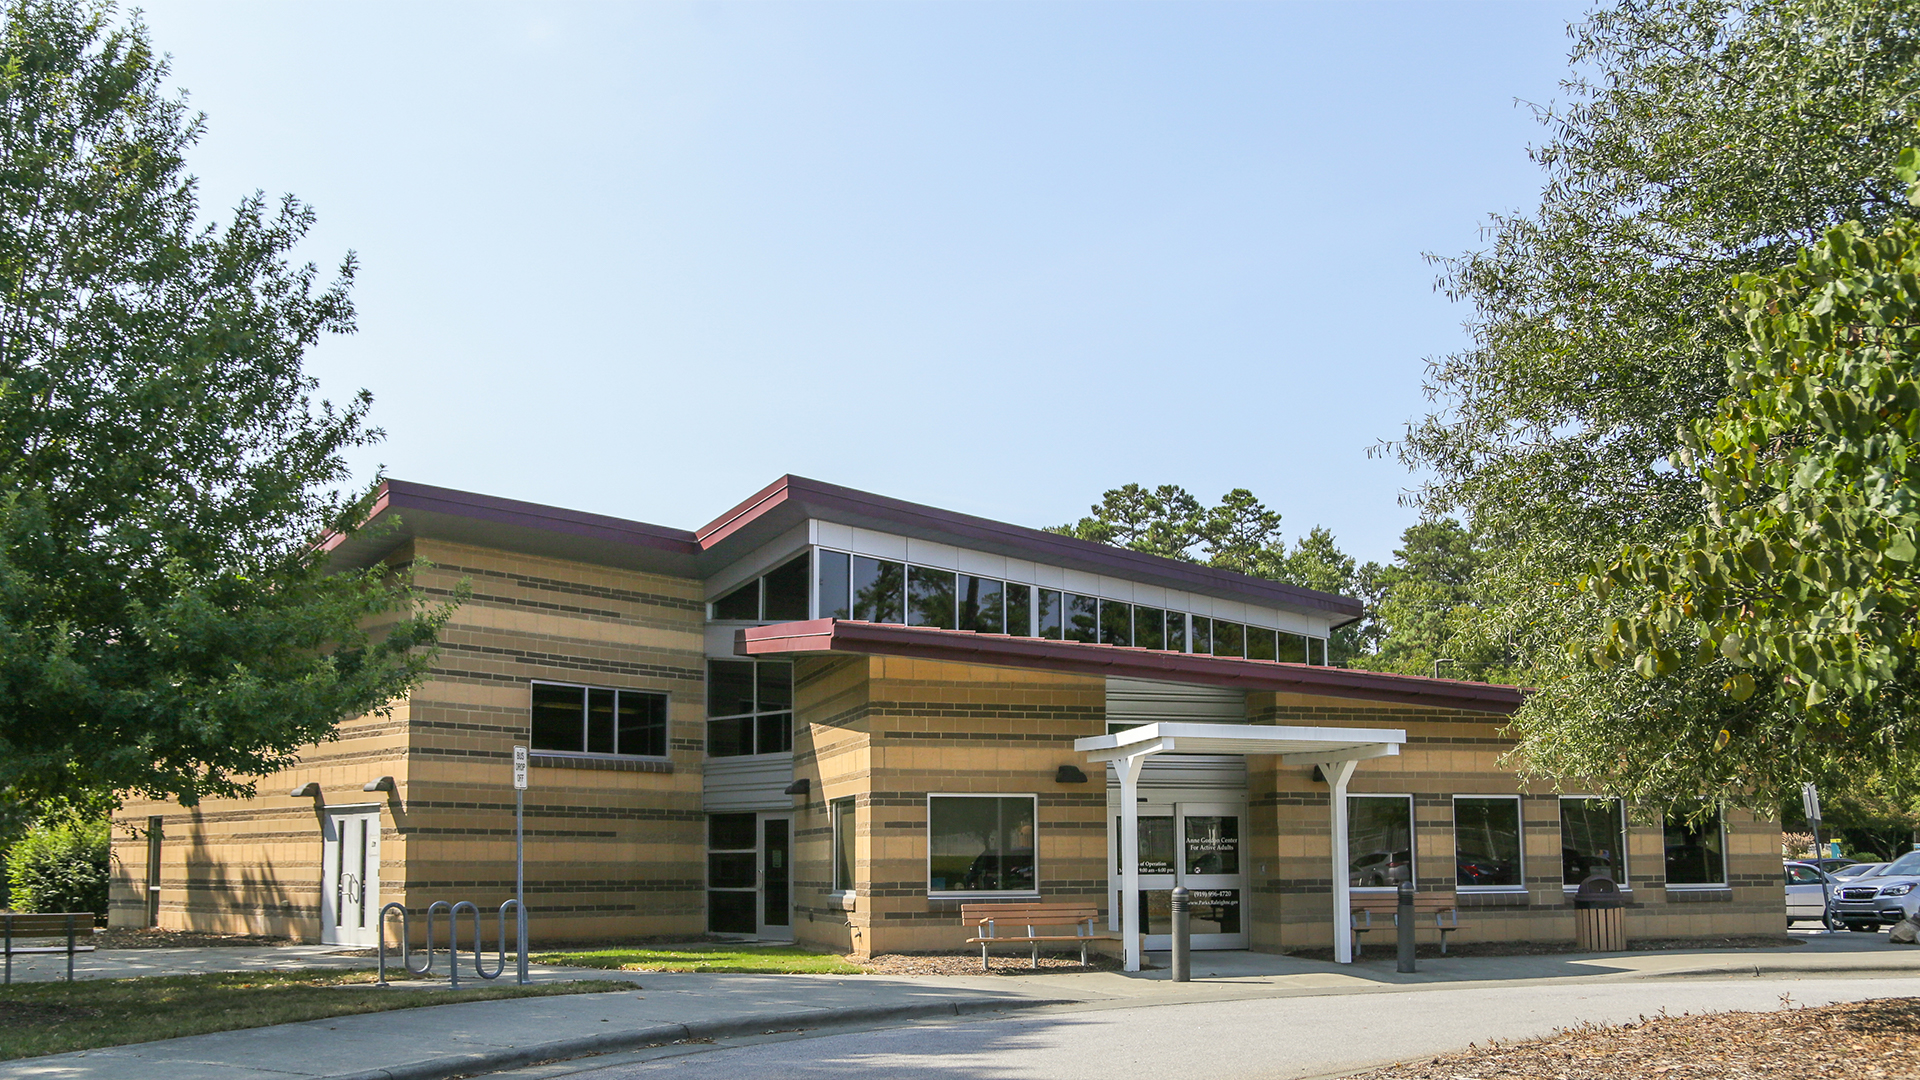 This is a picture of the front of the building of the Anne Gordon Center for Active Adults.